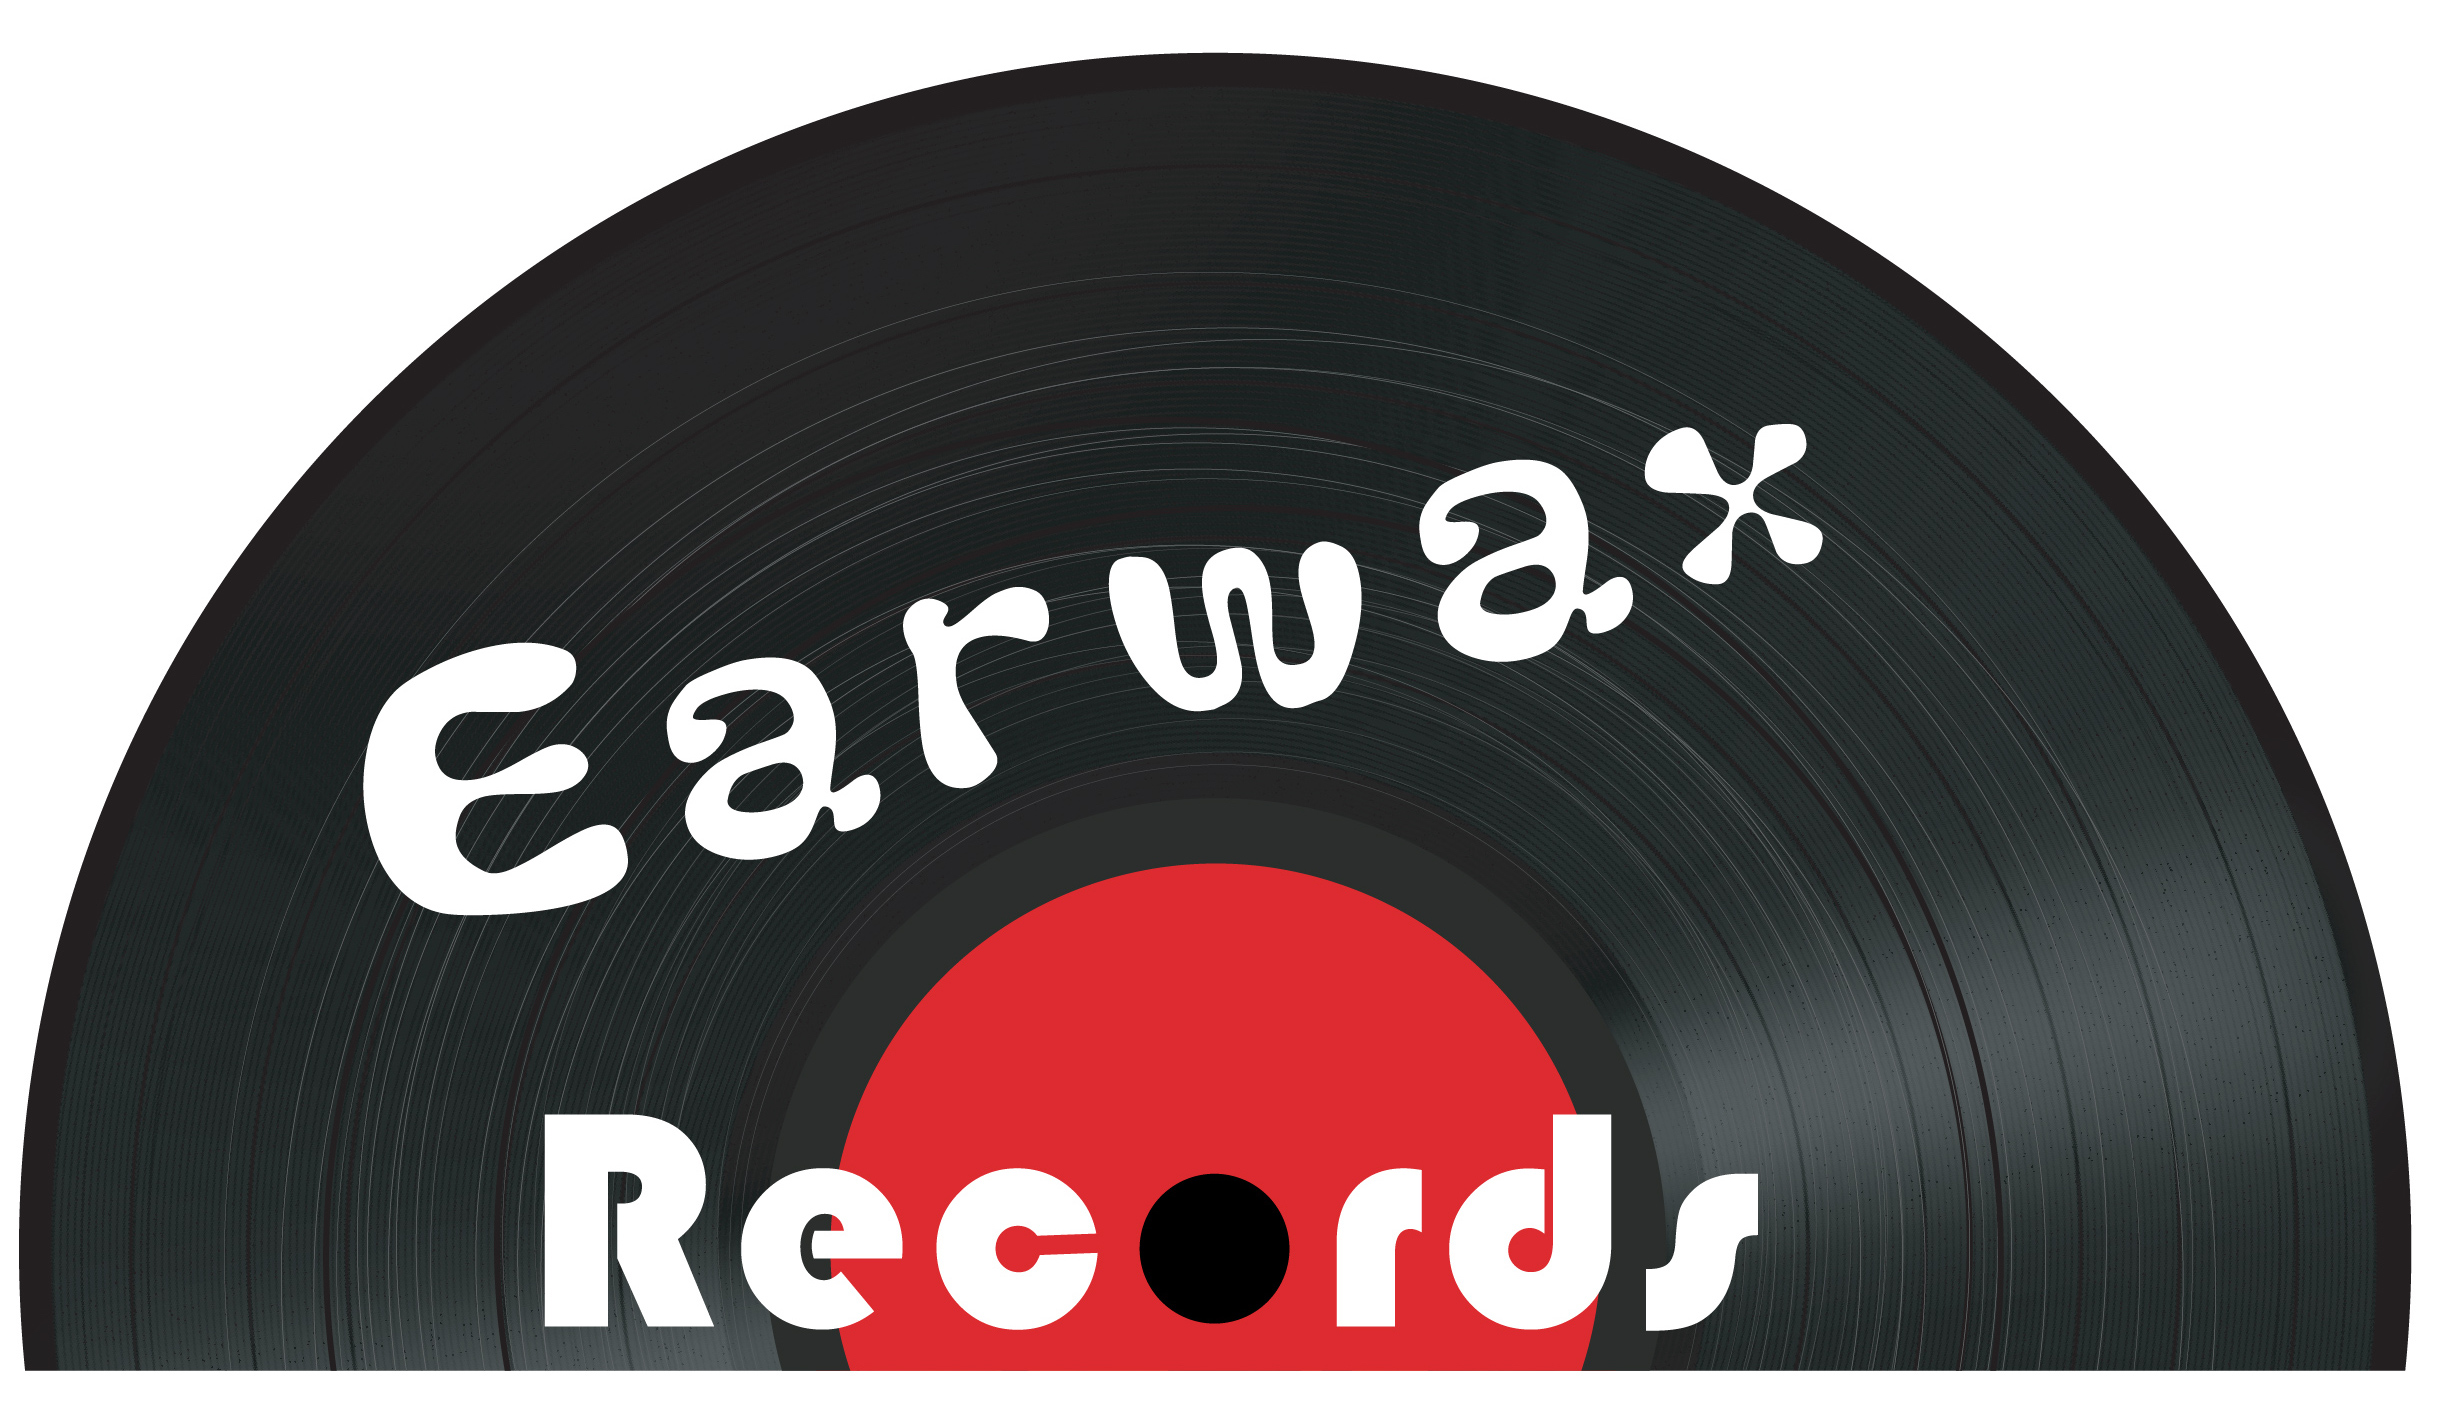 earwaxrecords